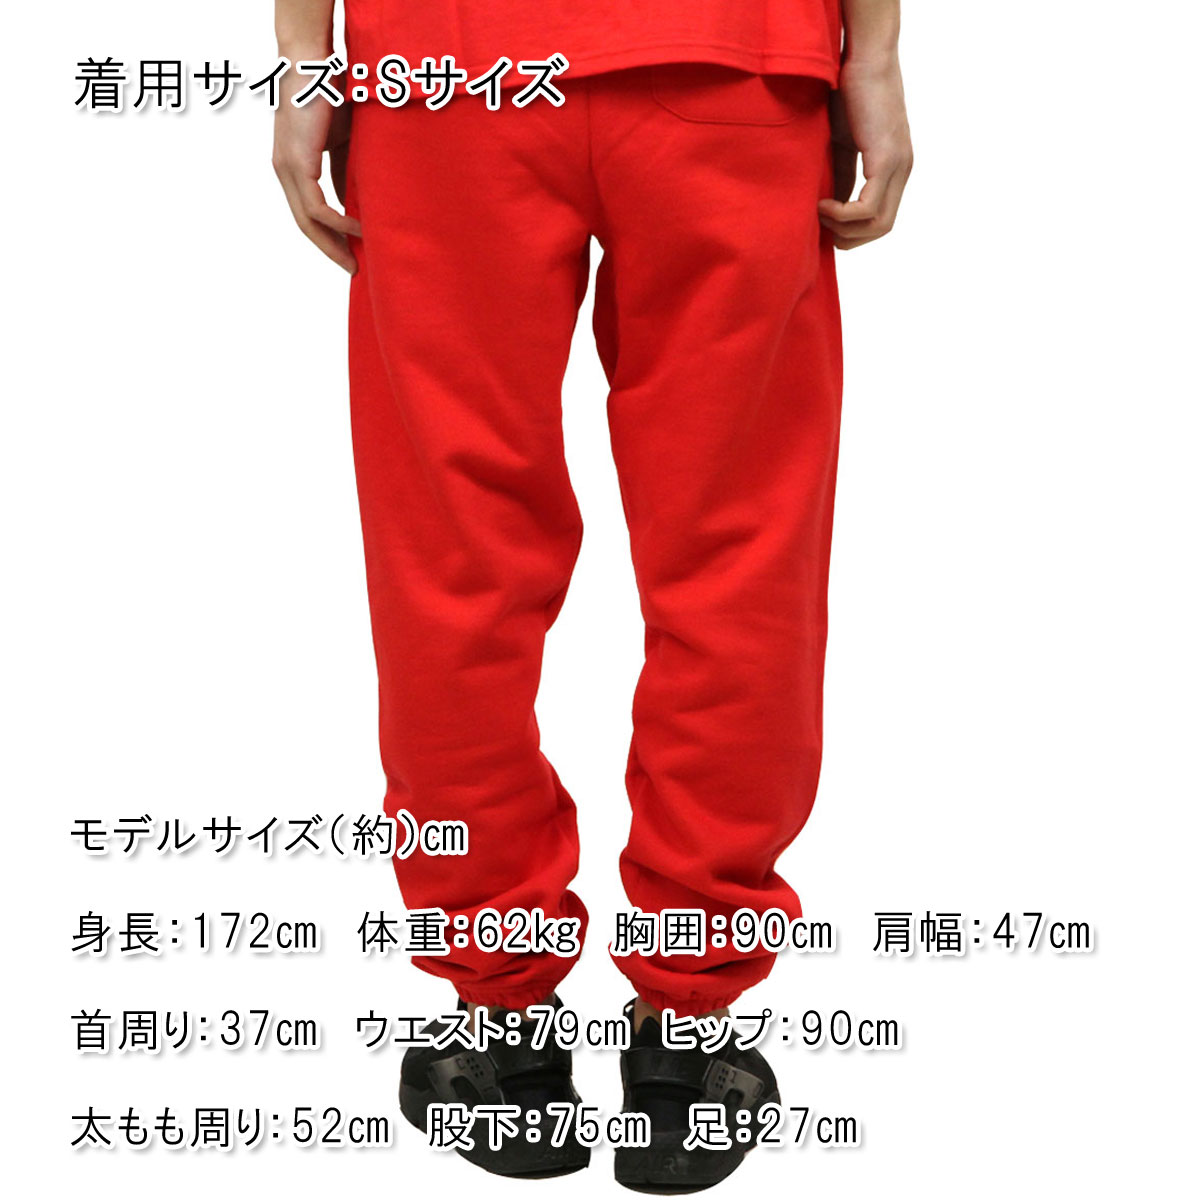 チャンピオン CHAMPION 正規品 メンズ ハーフパンツ SWEAT HALF PANTS P4971 Reverse Weave Pant w/ pockets W3J-TEAMREDSCARLET